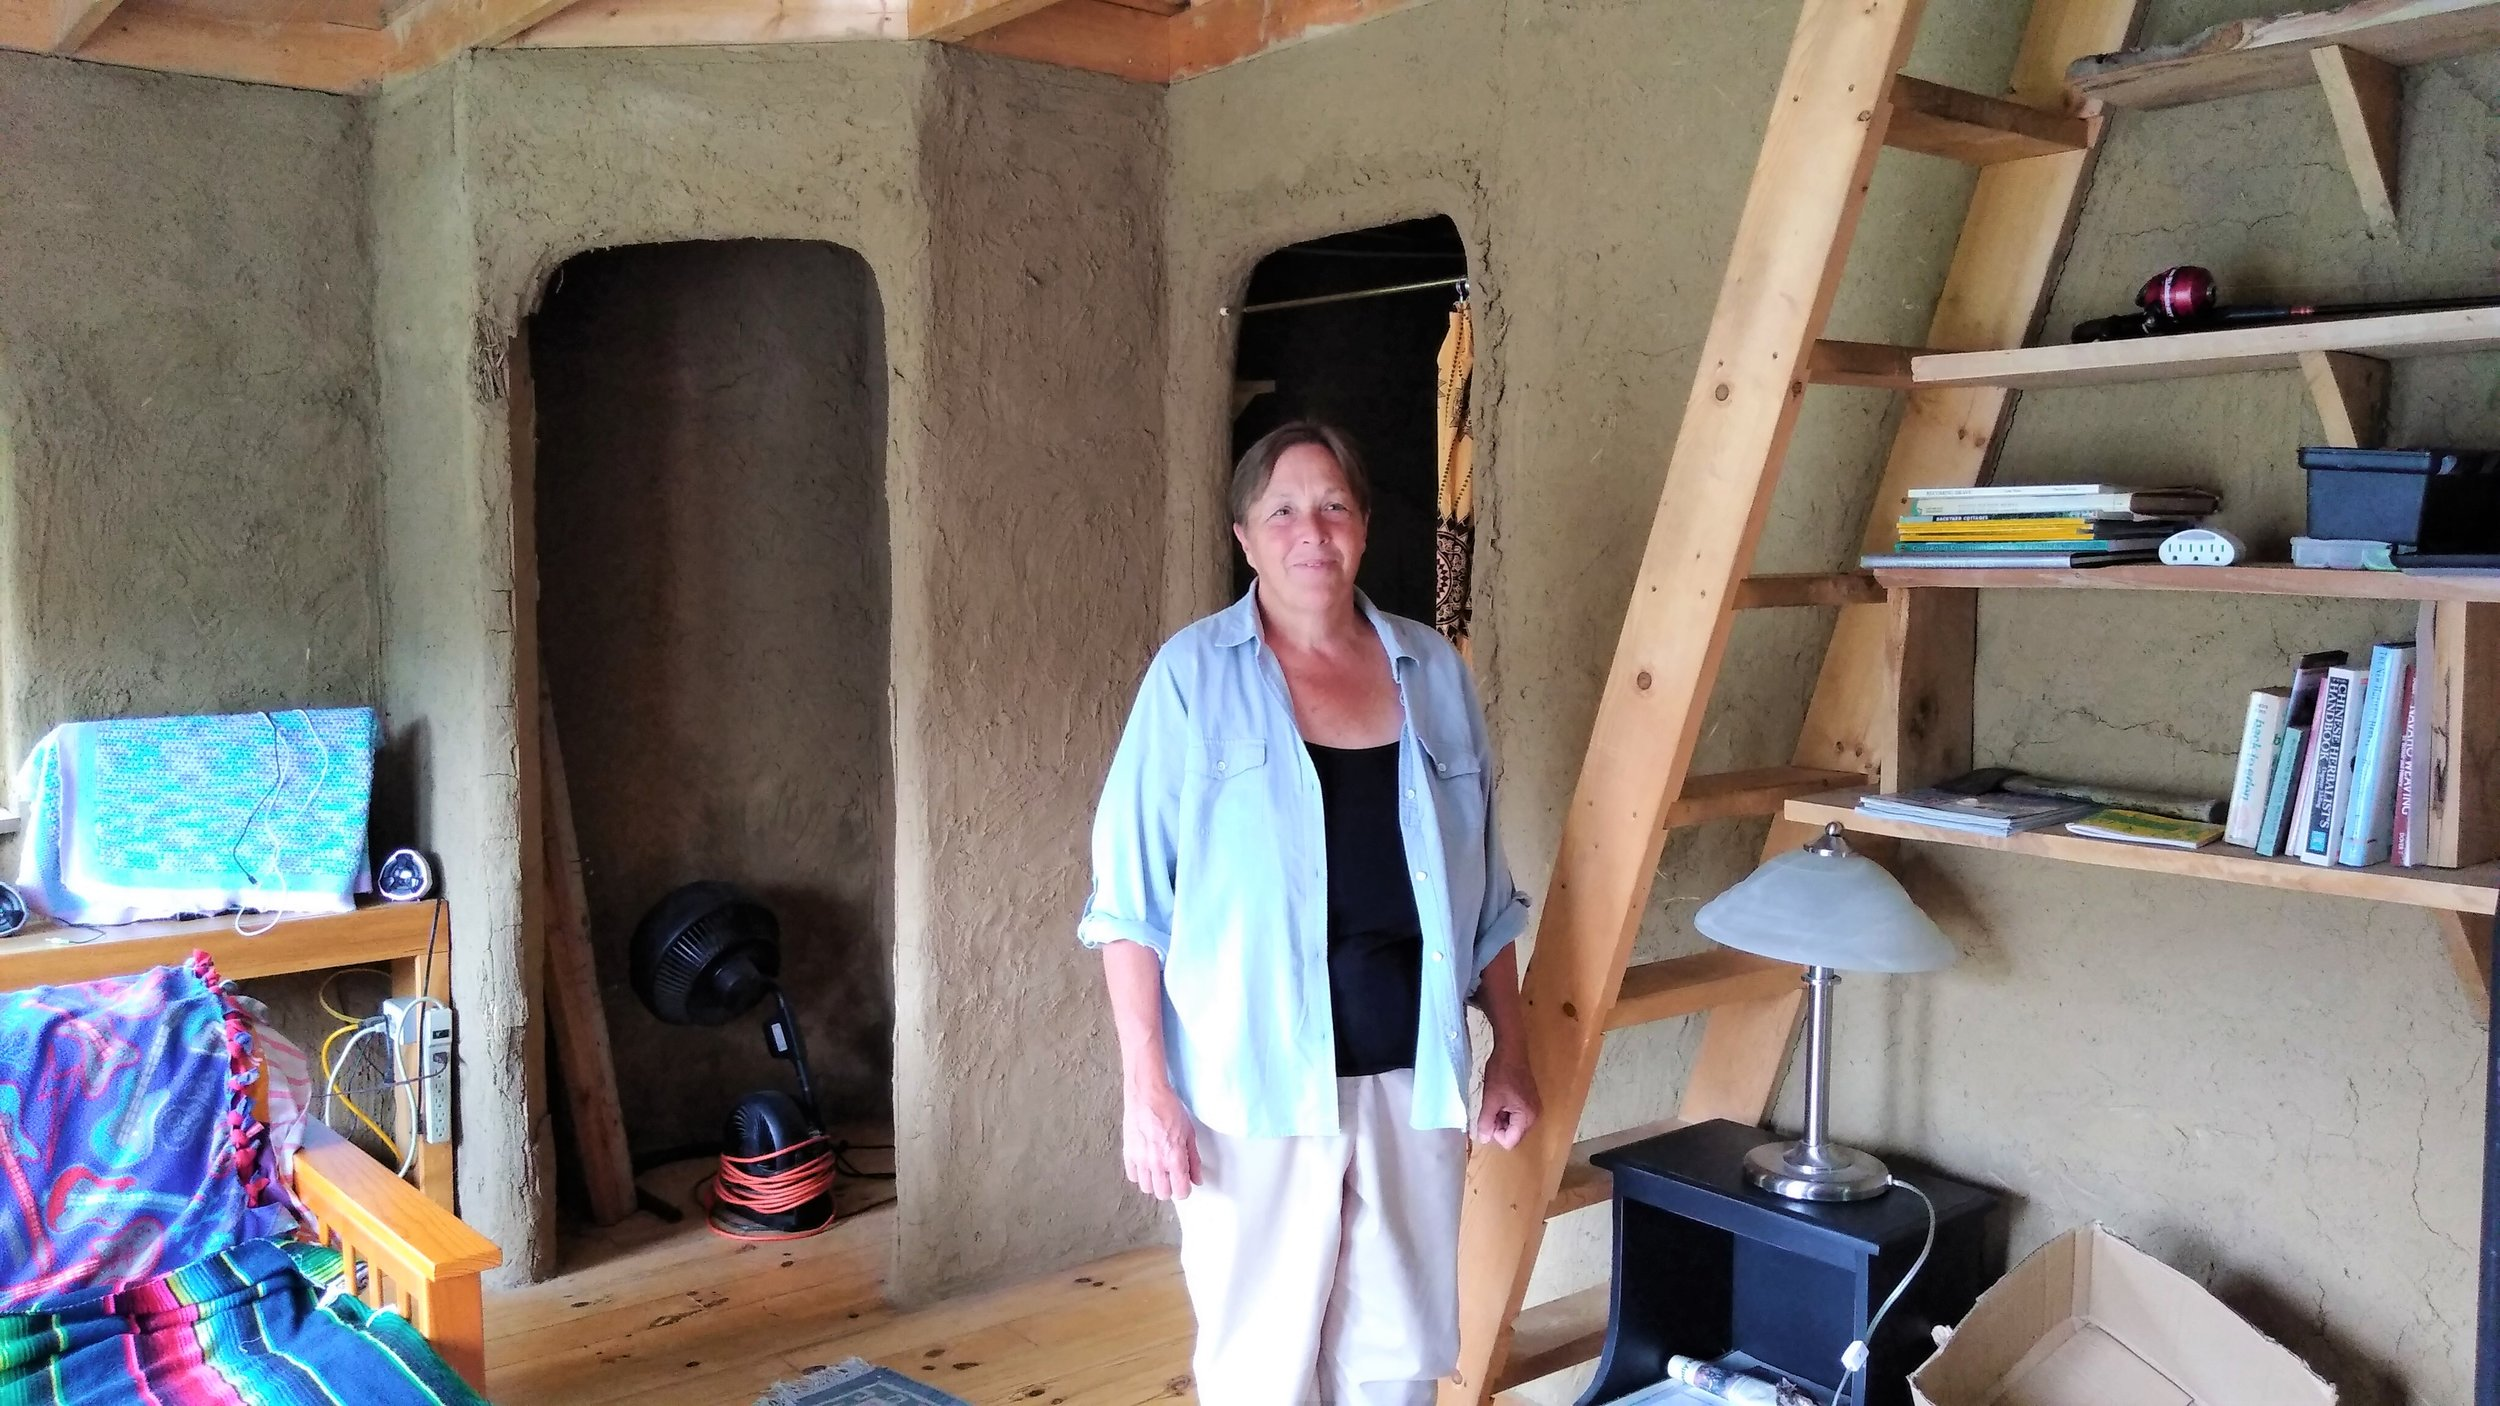 Dena inside one of the houses that is made of clay and straw